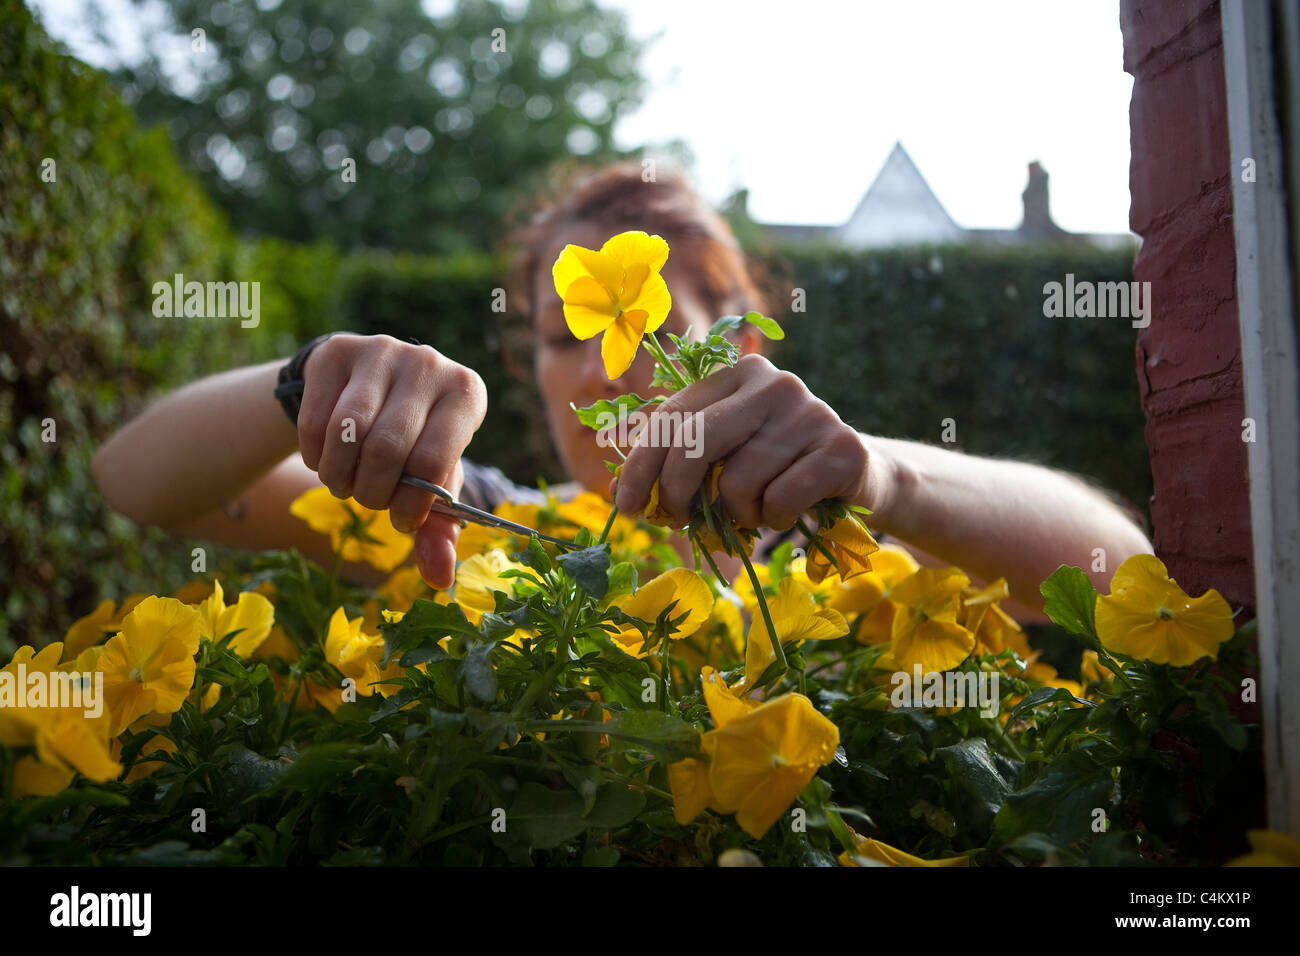 Woman attending to flowers in window box. - Stock Image